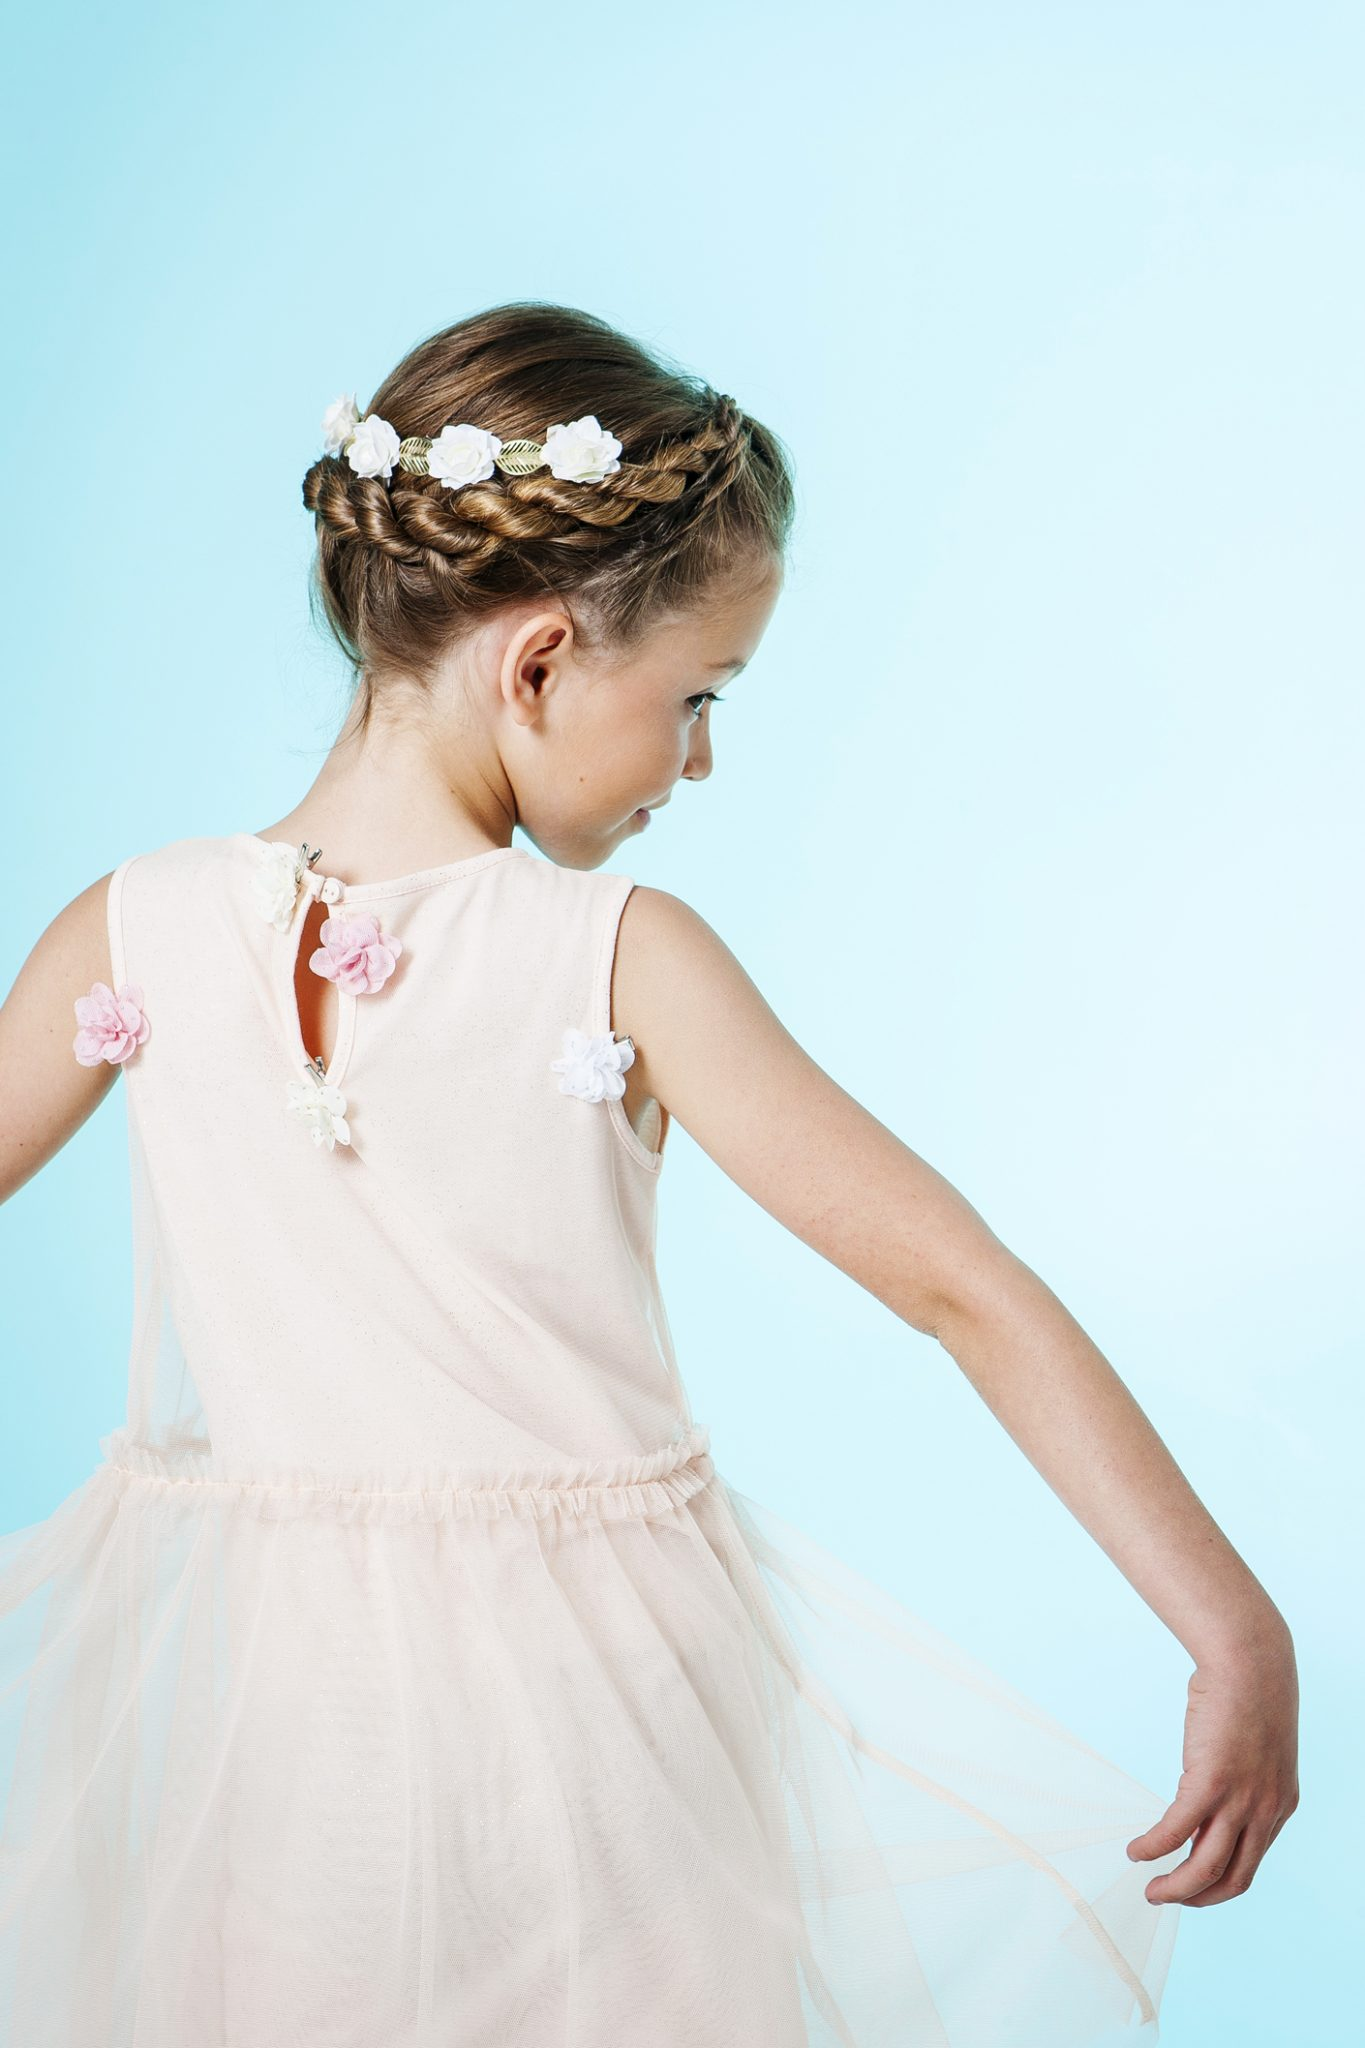 childrens-fashion-and-hair-photography-shot-in-a-manchester-studio